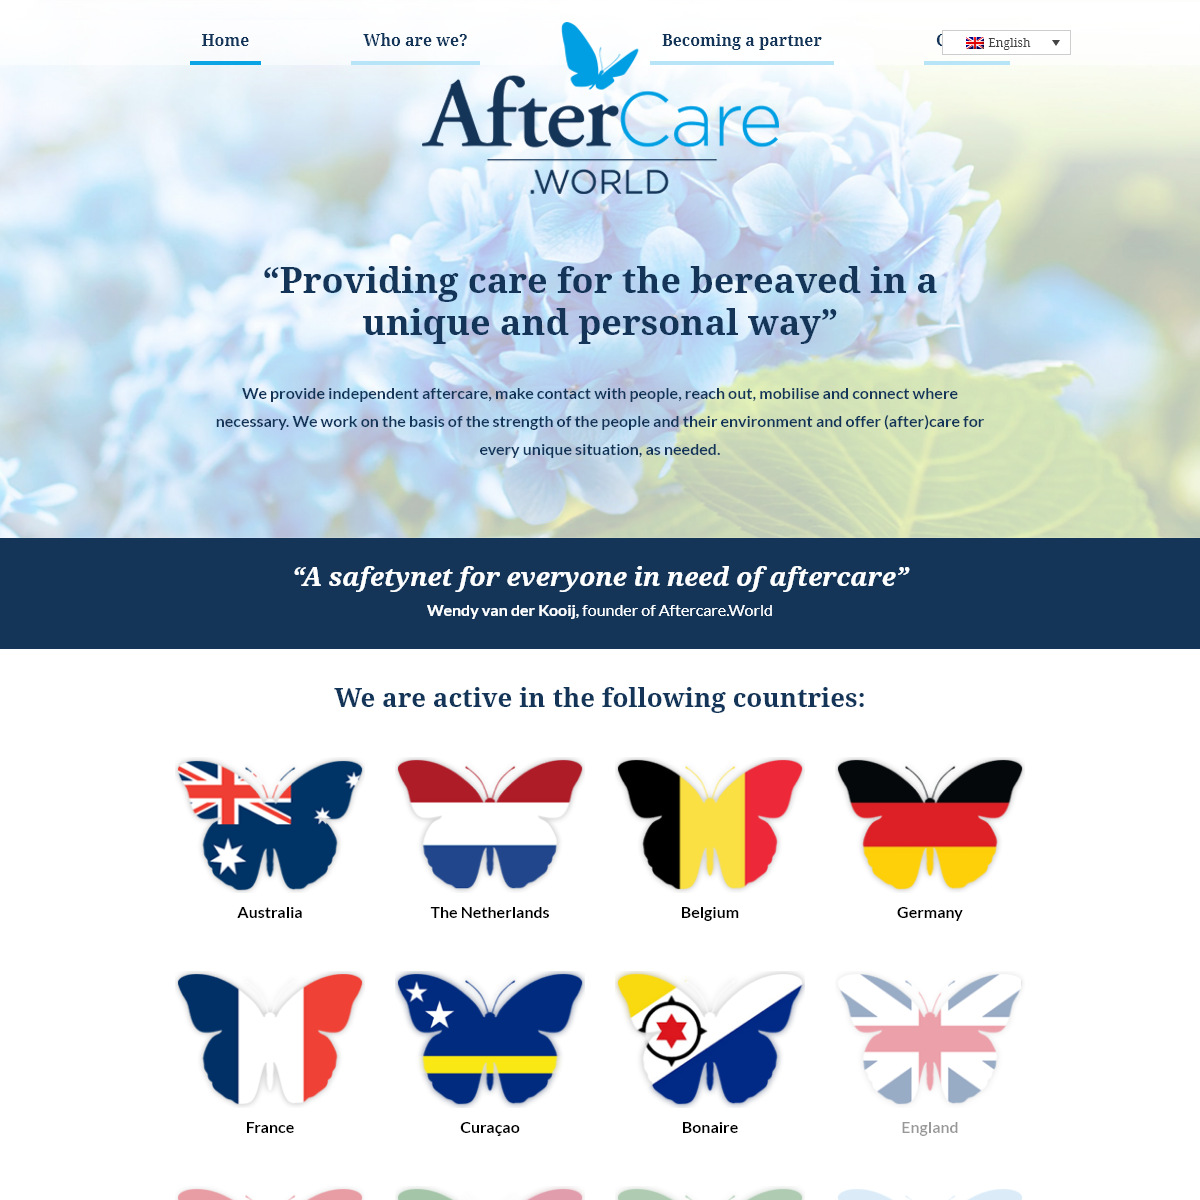 Providing care for the bereaved in a unique way - Aftercare.World